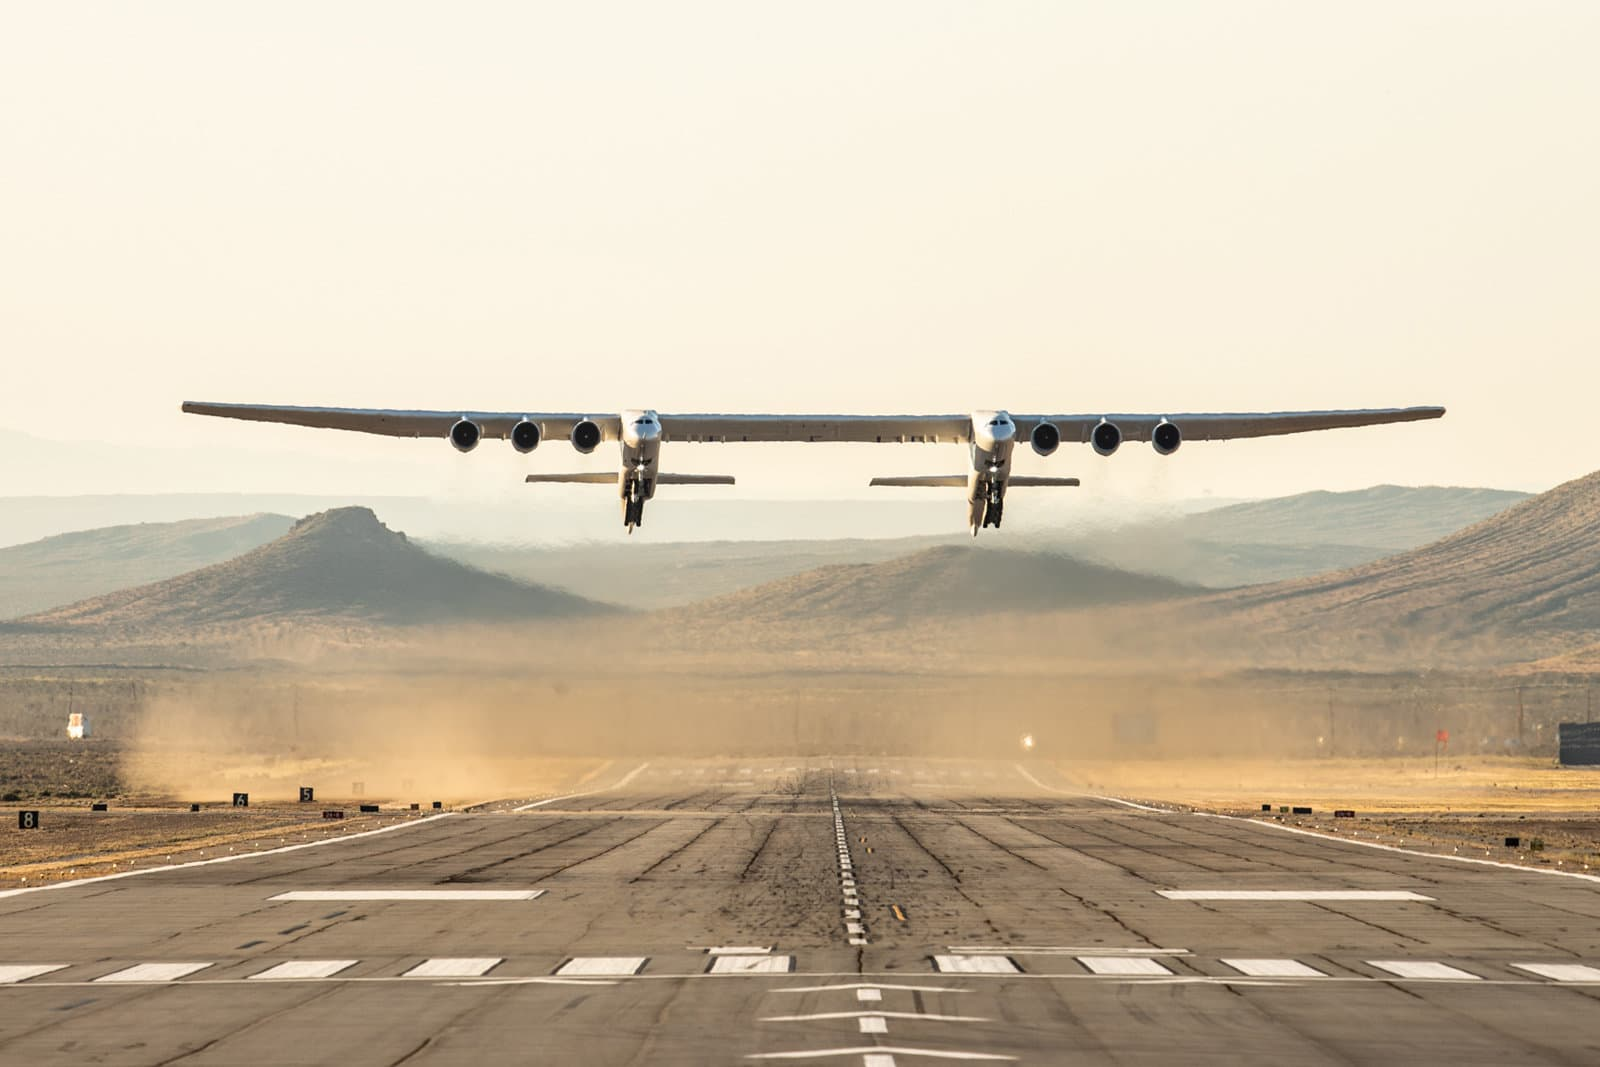 The Morning After: The world's biggest airplane takes to the skies